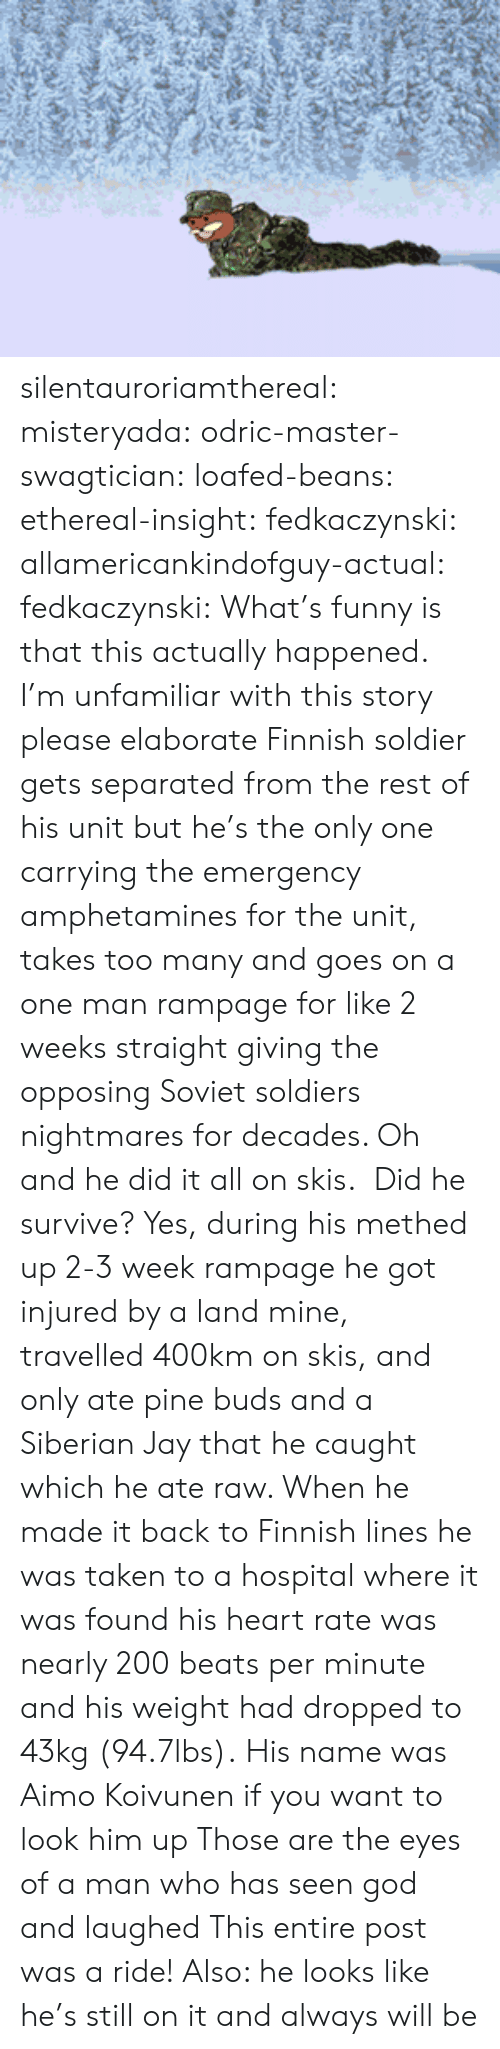 The Unit: silentauroriamthereal:  misteryada:  odric-master-swagtician:  loafed-beans:  ethereal-insight:  fedkaczynski:  allamericankindofguy-actual:  fedkaczynski:  What's funny is that this actually happened.  I'm unfamiliar with this story please elaborate   Finnish soldier gets separated from the rest of his unit but he's the only one carrying the emergency amphetamines for the unit, takes too many and goes on a one man rampage for like 2 weeks straight giving the opposing Soviet soldiers nightmares for decades. Oh and he did it all on skis.   Did he survive?  Yes, during his methed up 2-3 week rampage he got injured by a land mine, travelled 400km on skis, and only ate pine buds and a Siberian Jay that he caught which he ate raw. When he made it back to Finnish lines he was taken to a hospital where it was found his heart rate was nearly 200 beats per minute and his weight had dropped to 43kg (94.7lbs).  His name was Aimo Koivunen if you want to look him up  Those are the eyes of a man who has seen god and laughed   This entire post was a ride! Also: he looks like he's still on it and always will be